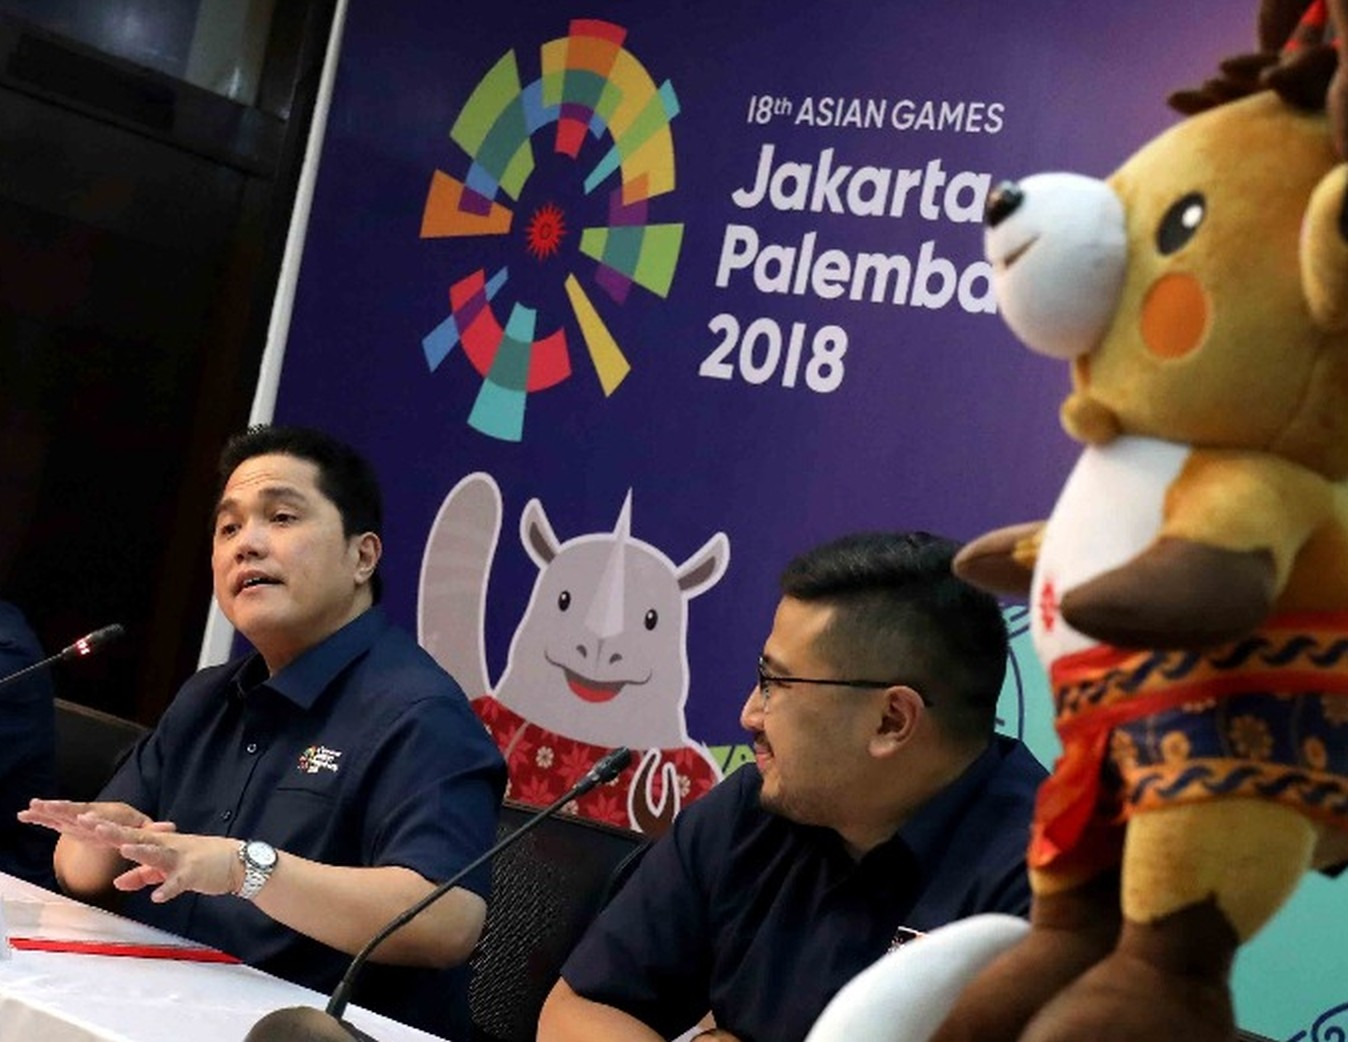 Asian Games organizers allocate 25,000 tickets to students